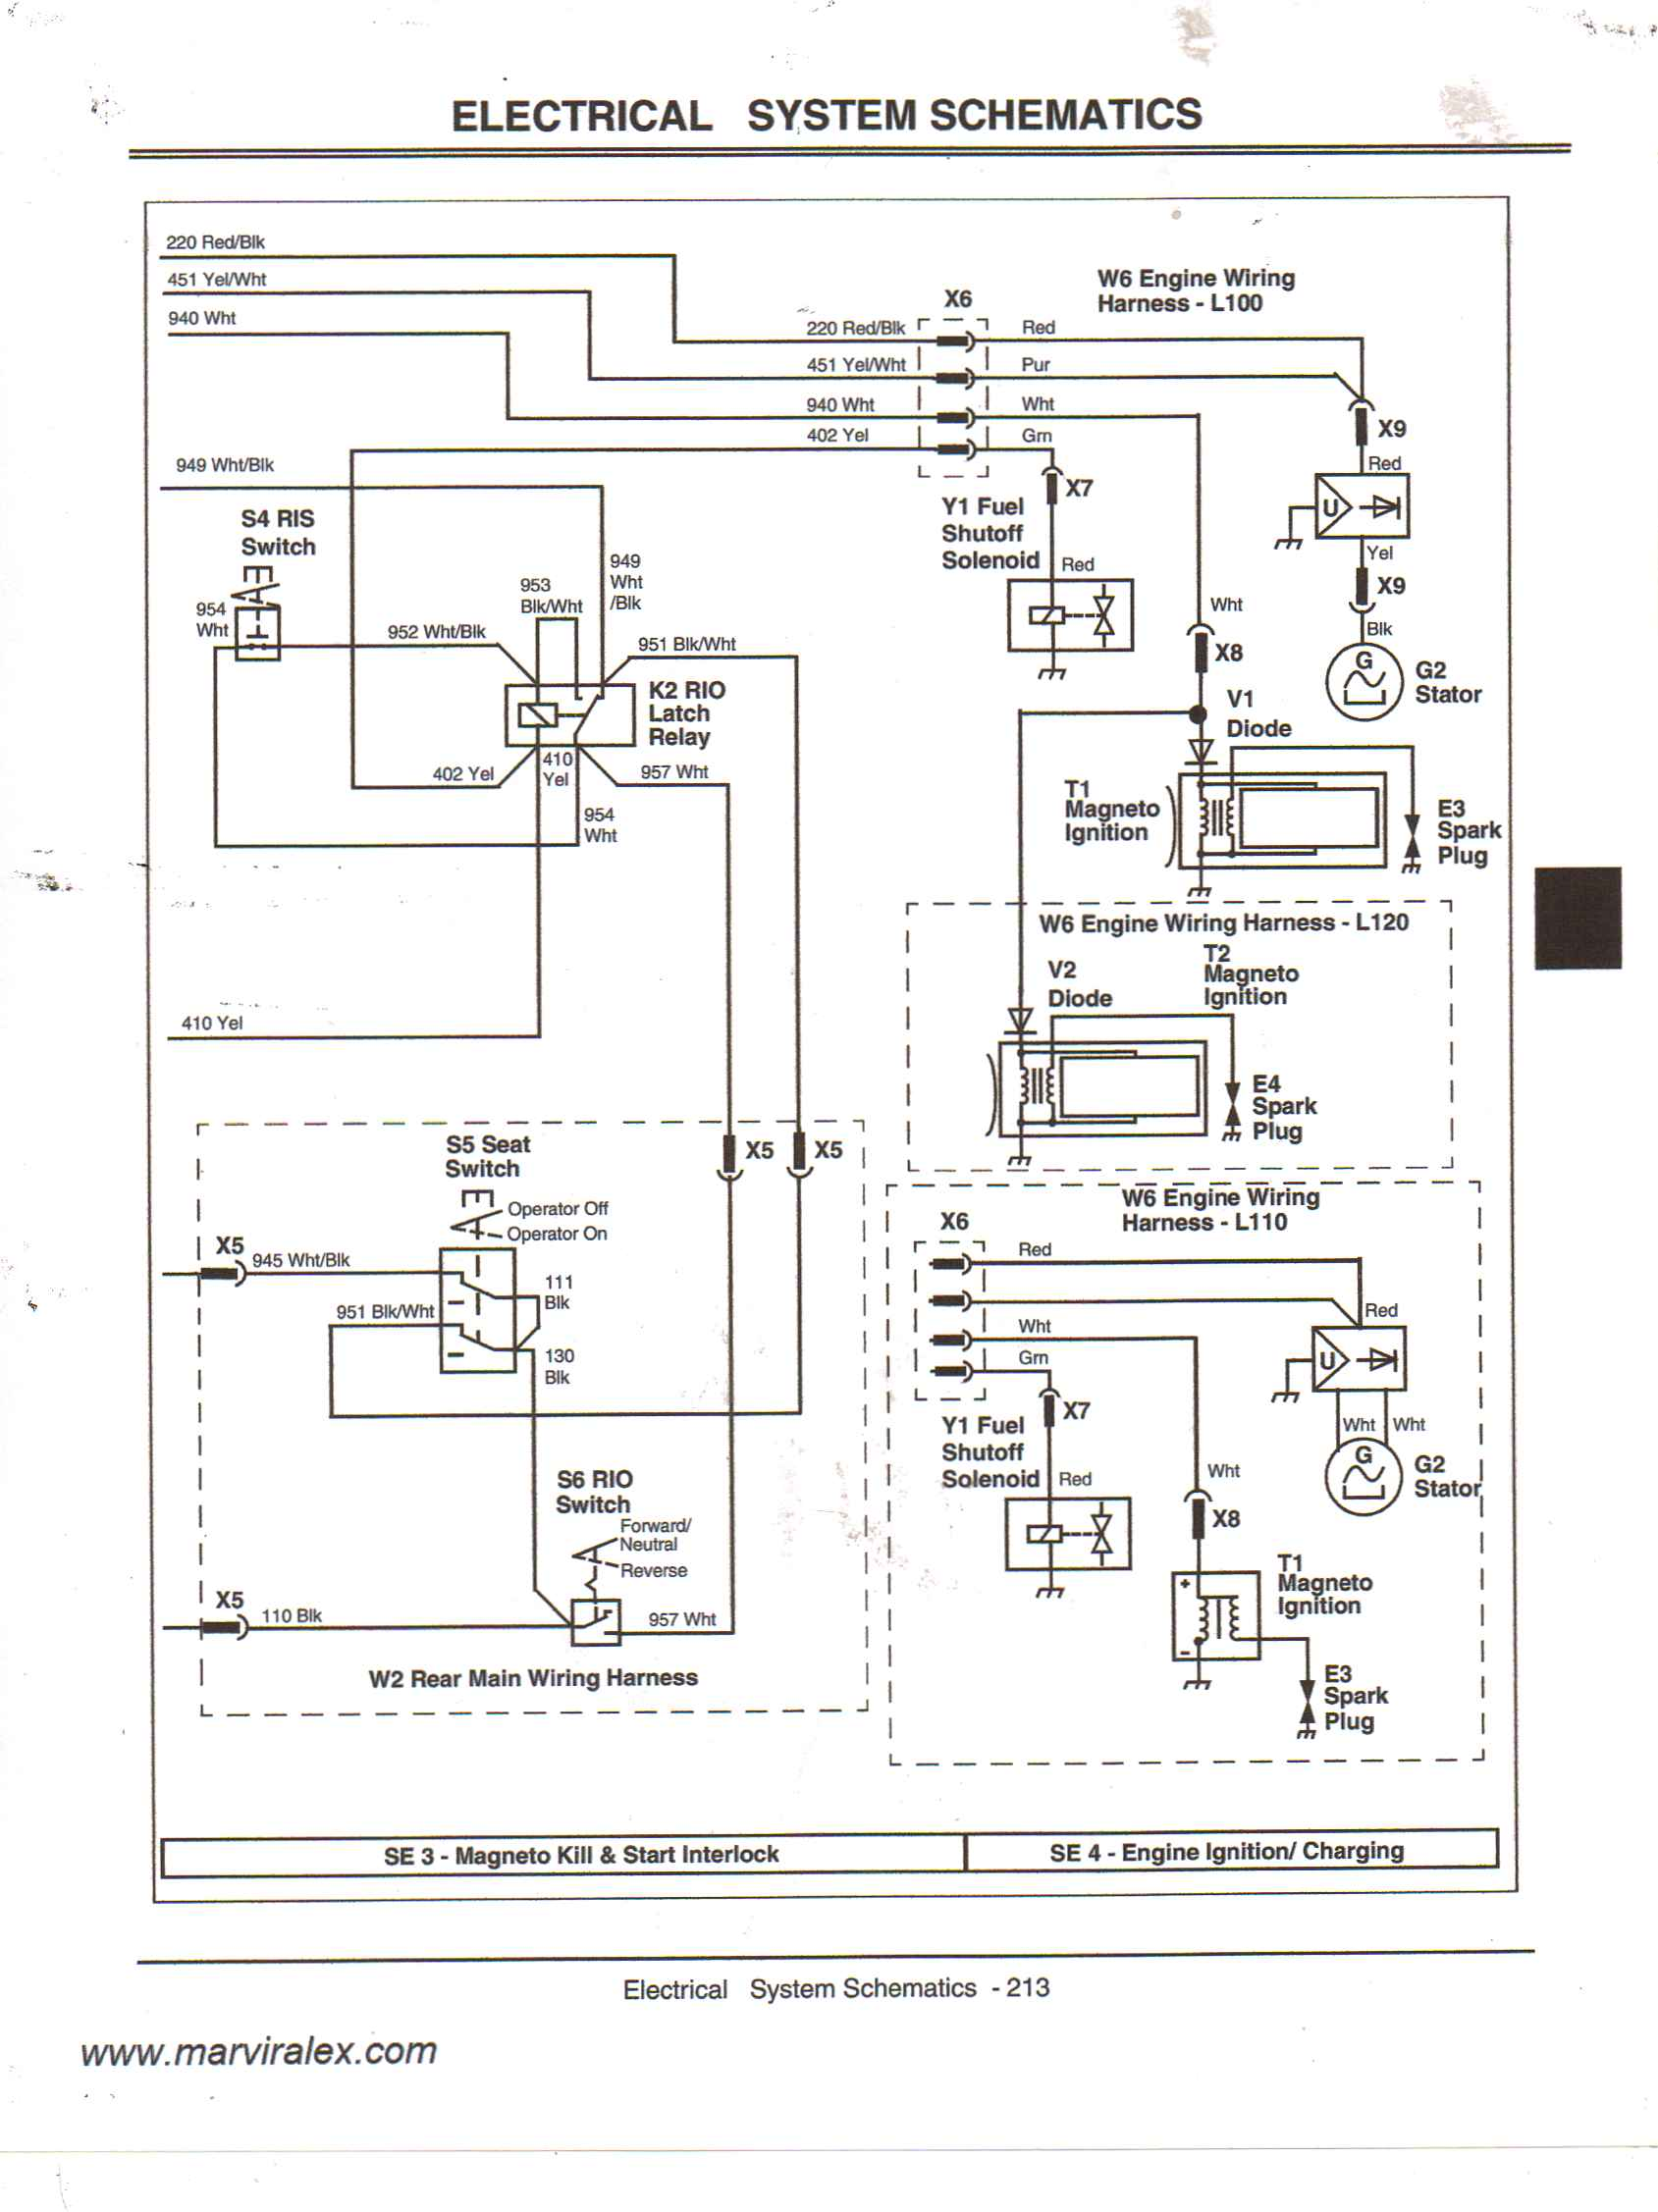 raven wiring diagrams wiring diagramsraven cable wiring diagrams wiring diagramssabre wiring diagram wiring diagramjohn deere wiring diagrams wiring diagram librarysabre